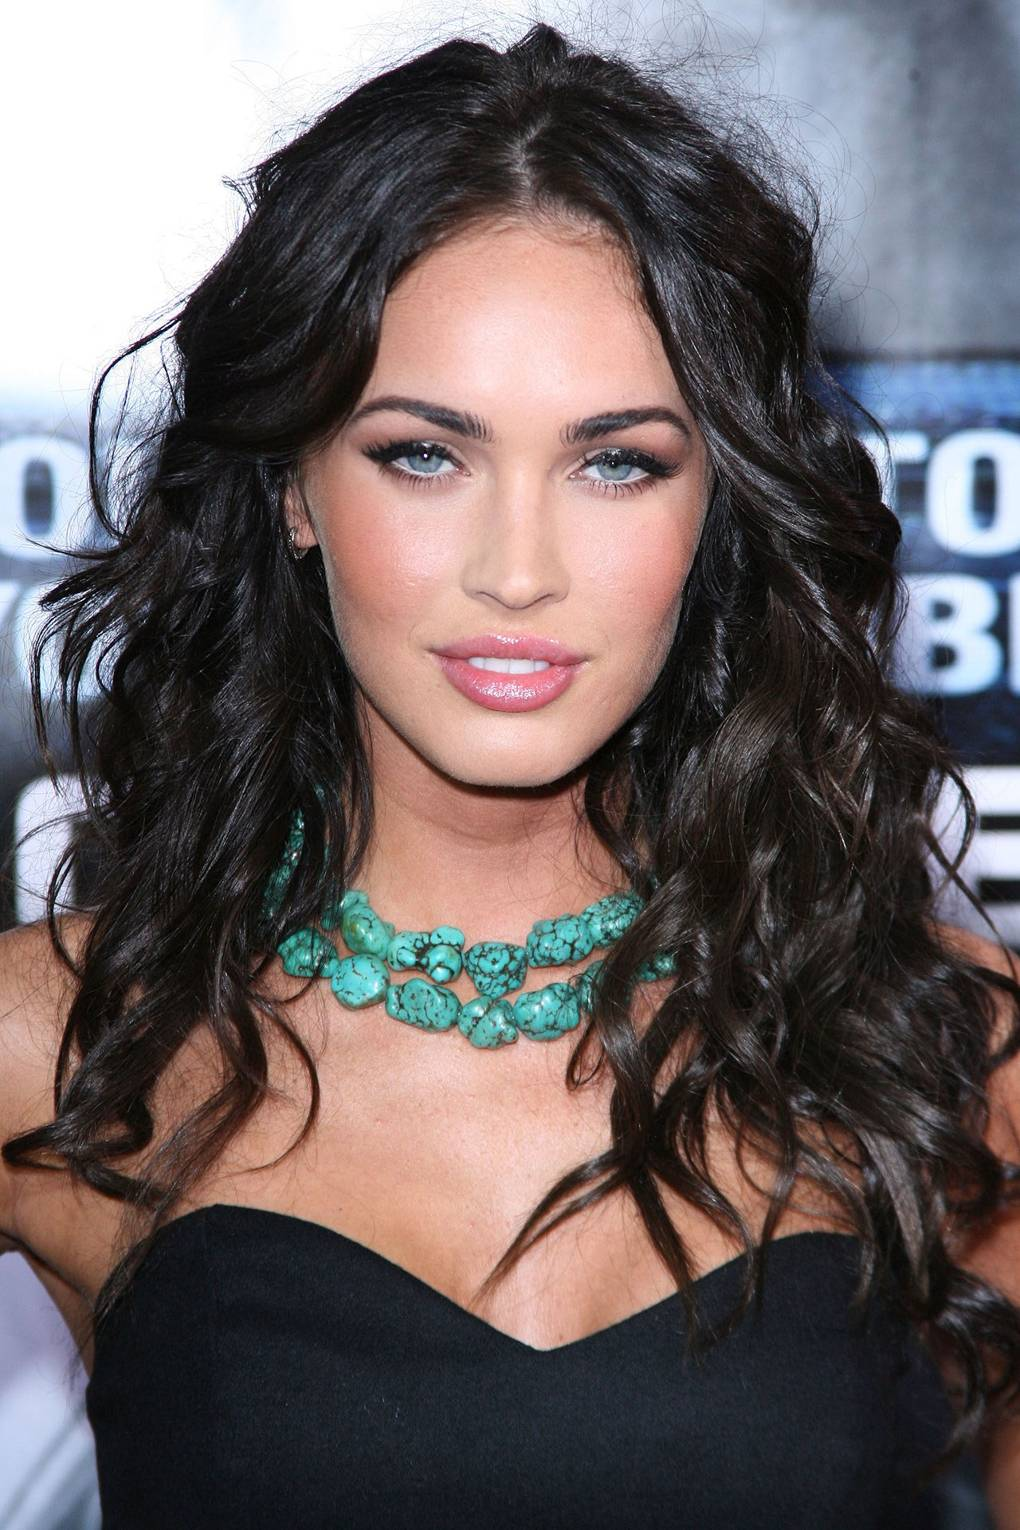 Megan Fox Megan Fox new images